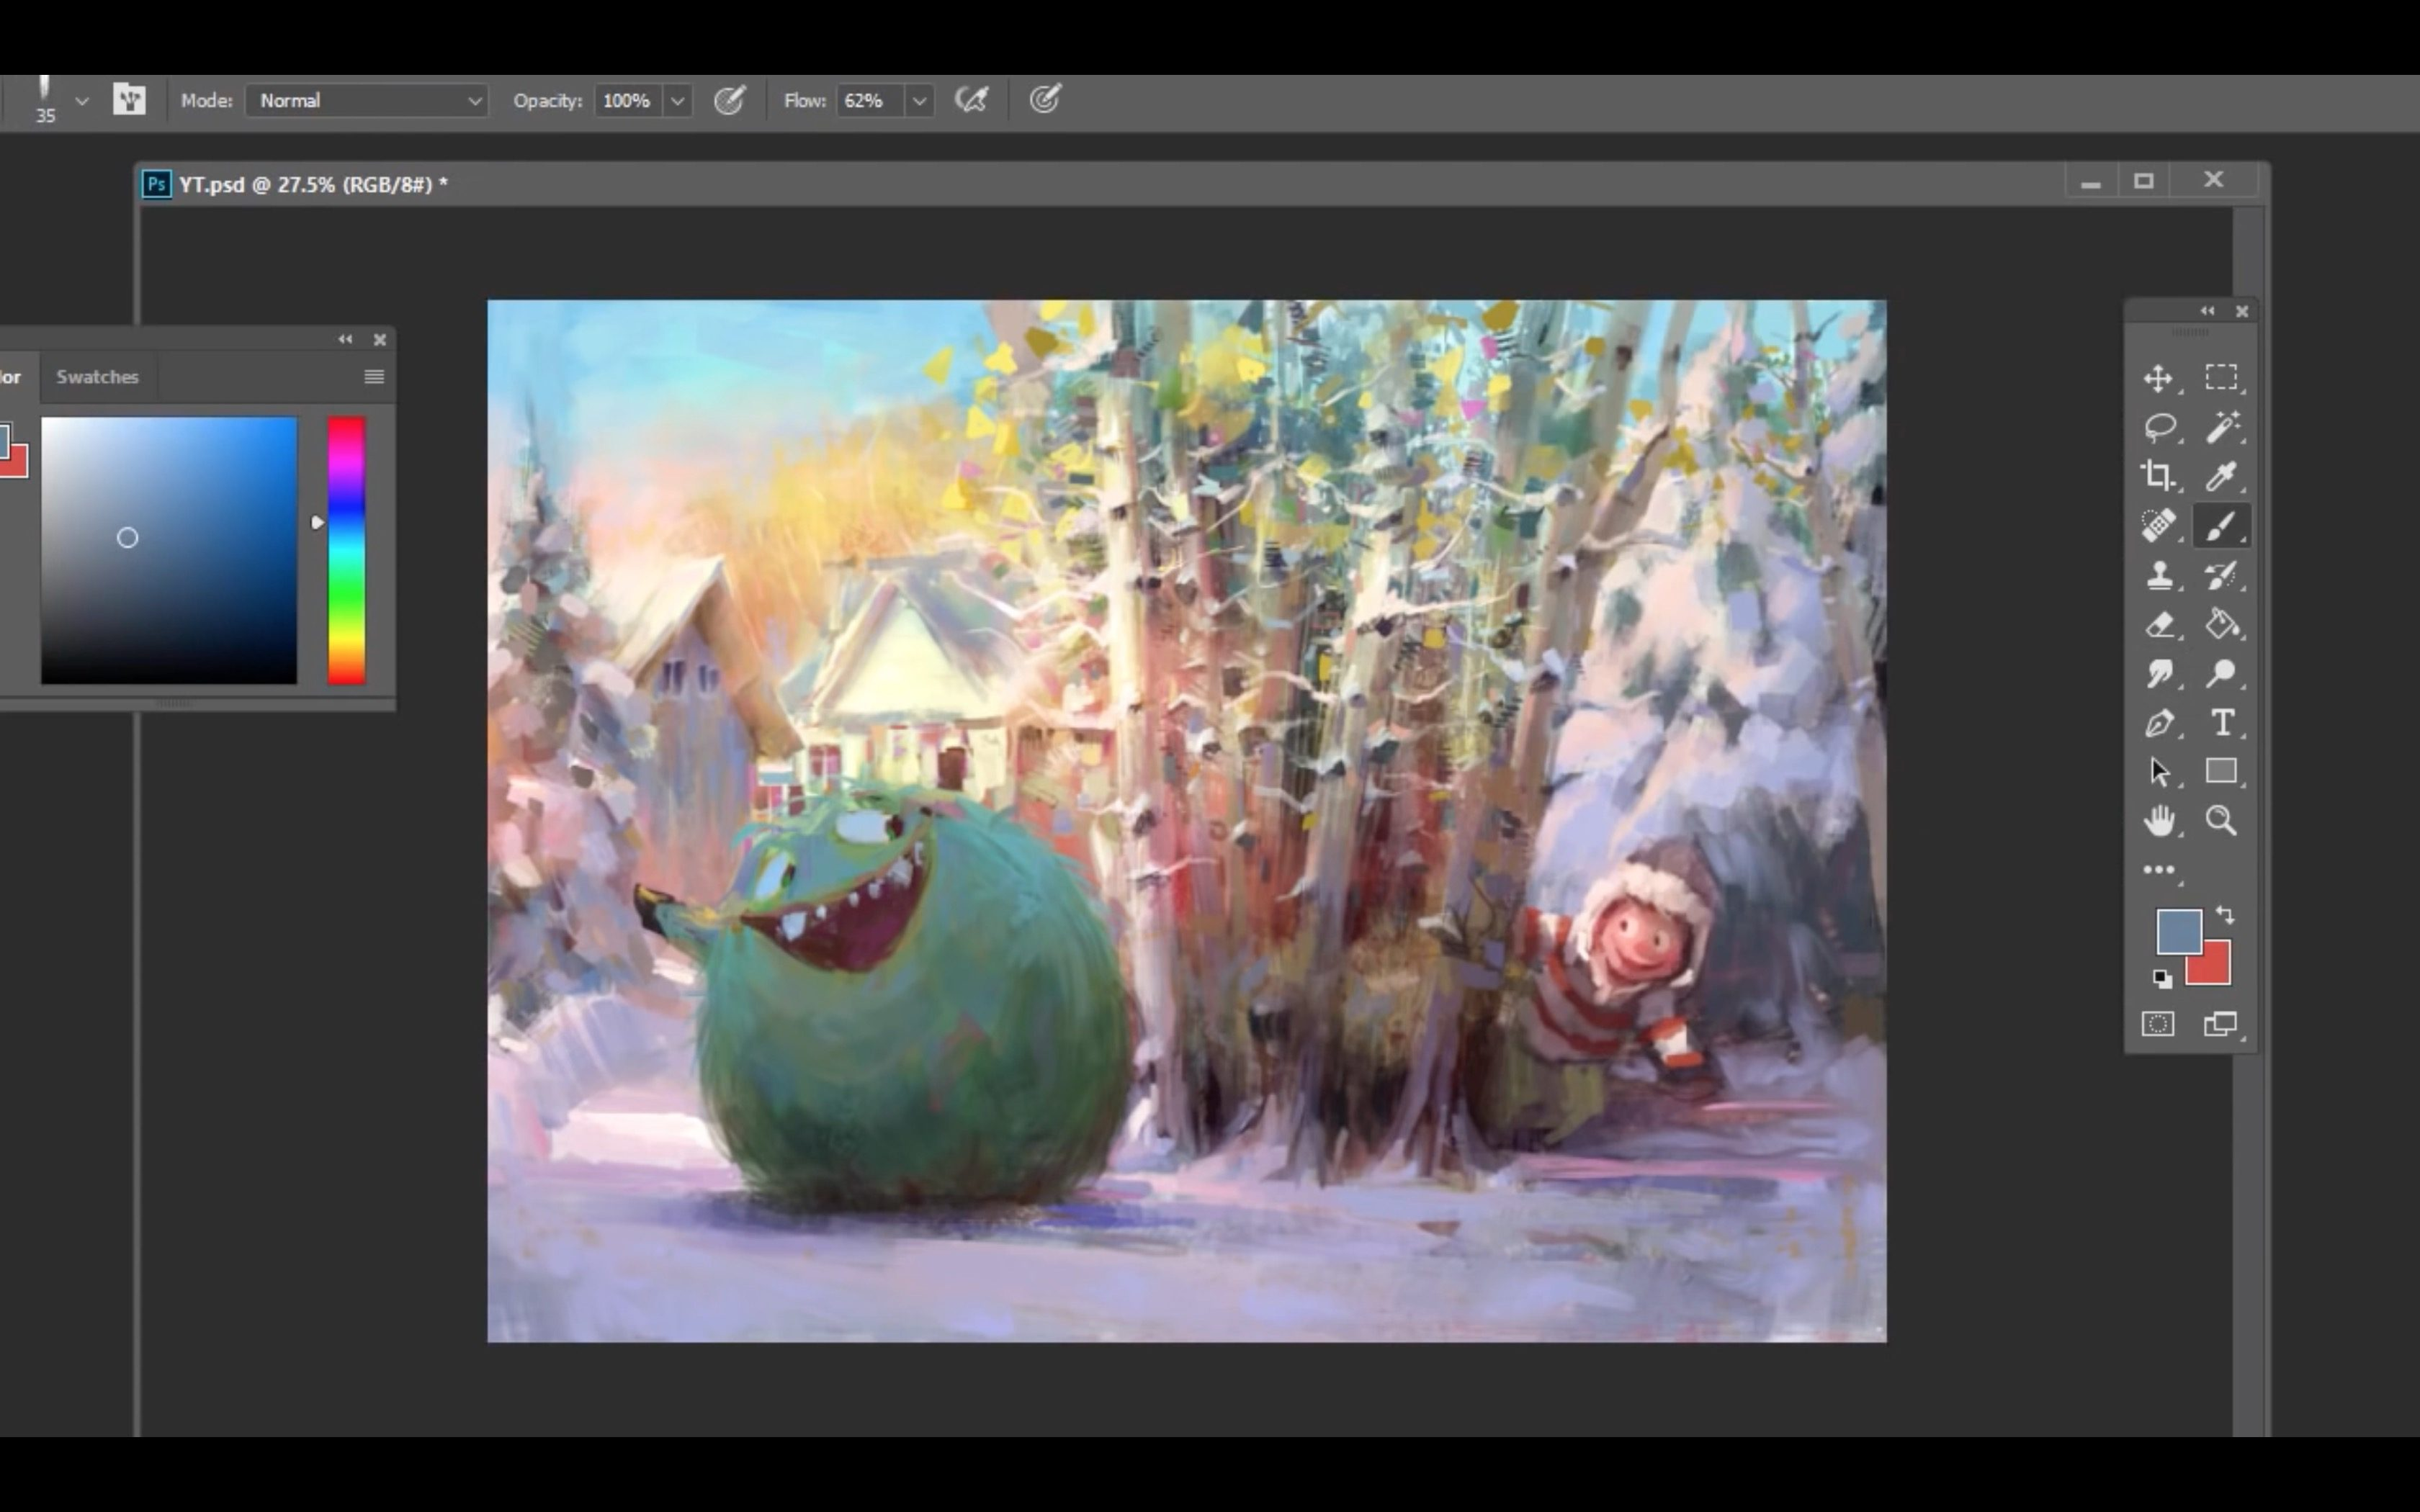 Making of Snowball Fight by Marco Bucci